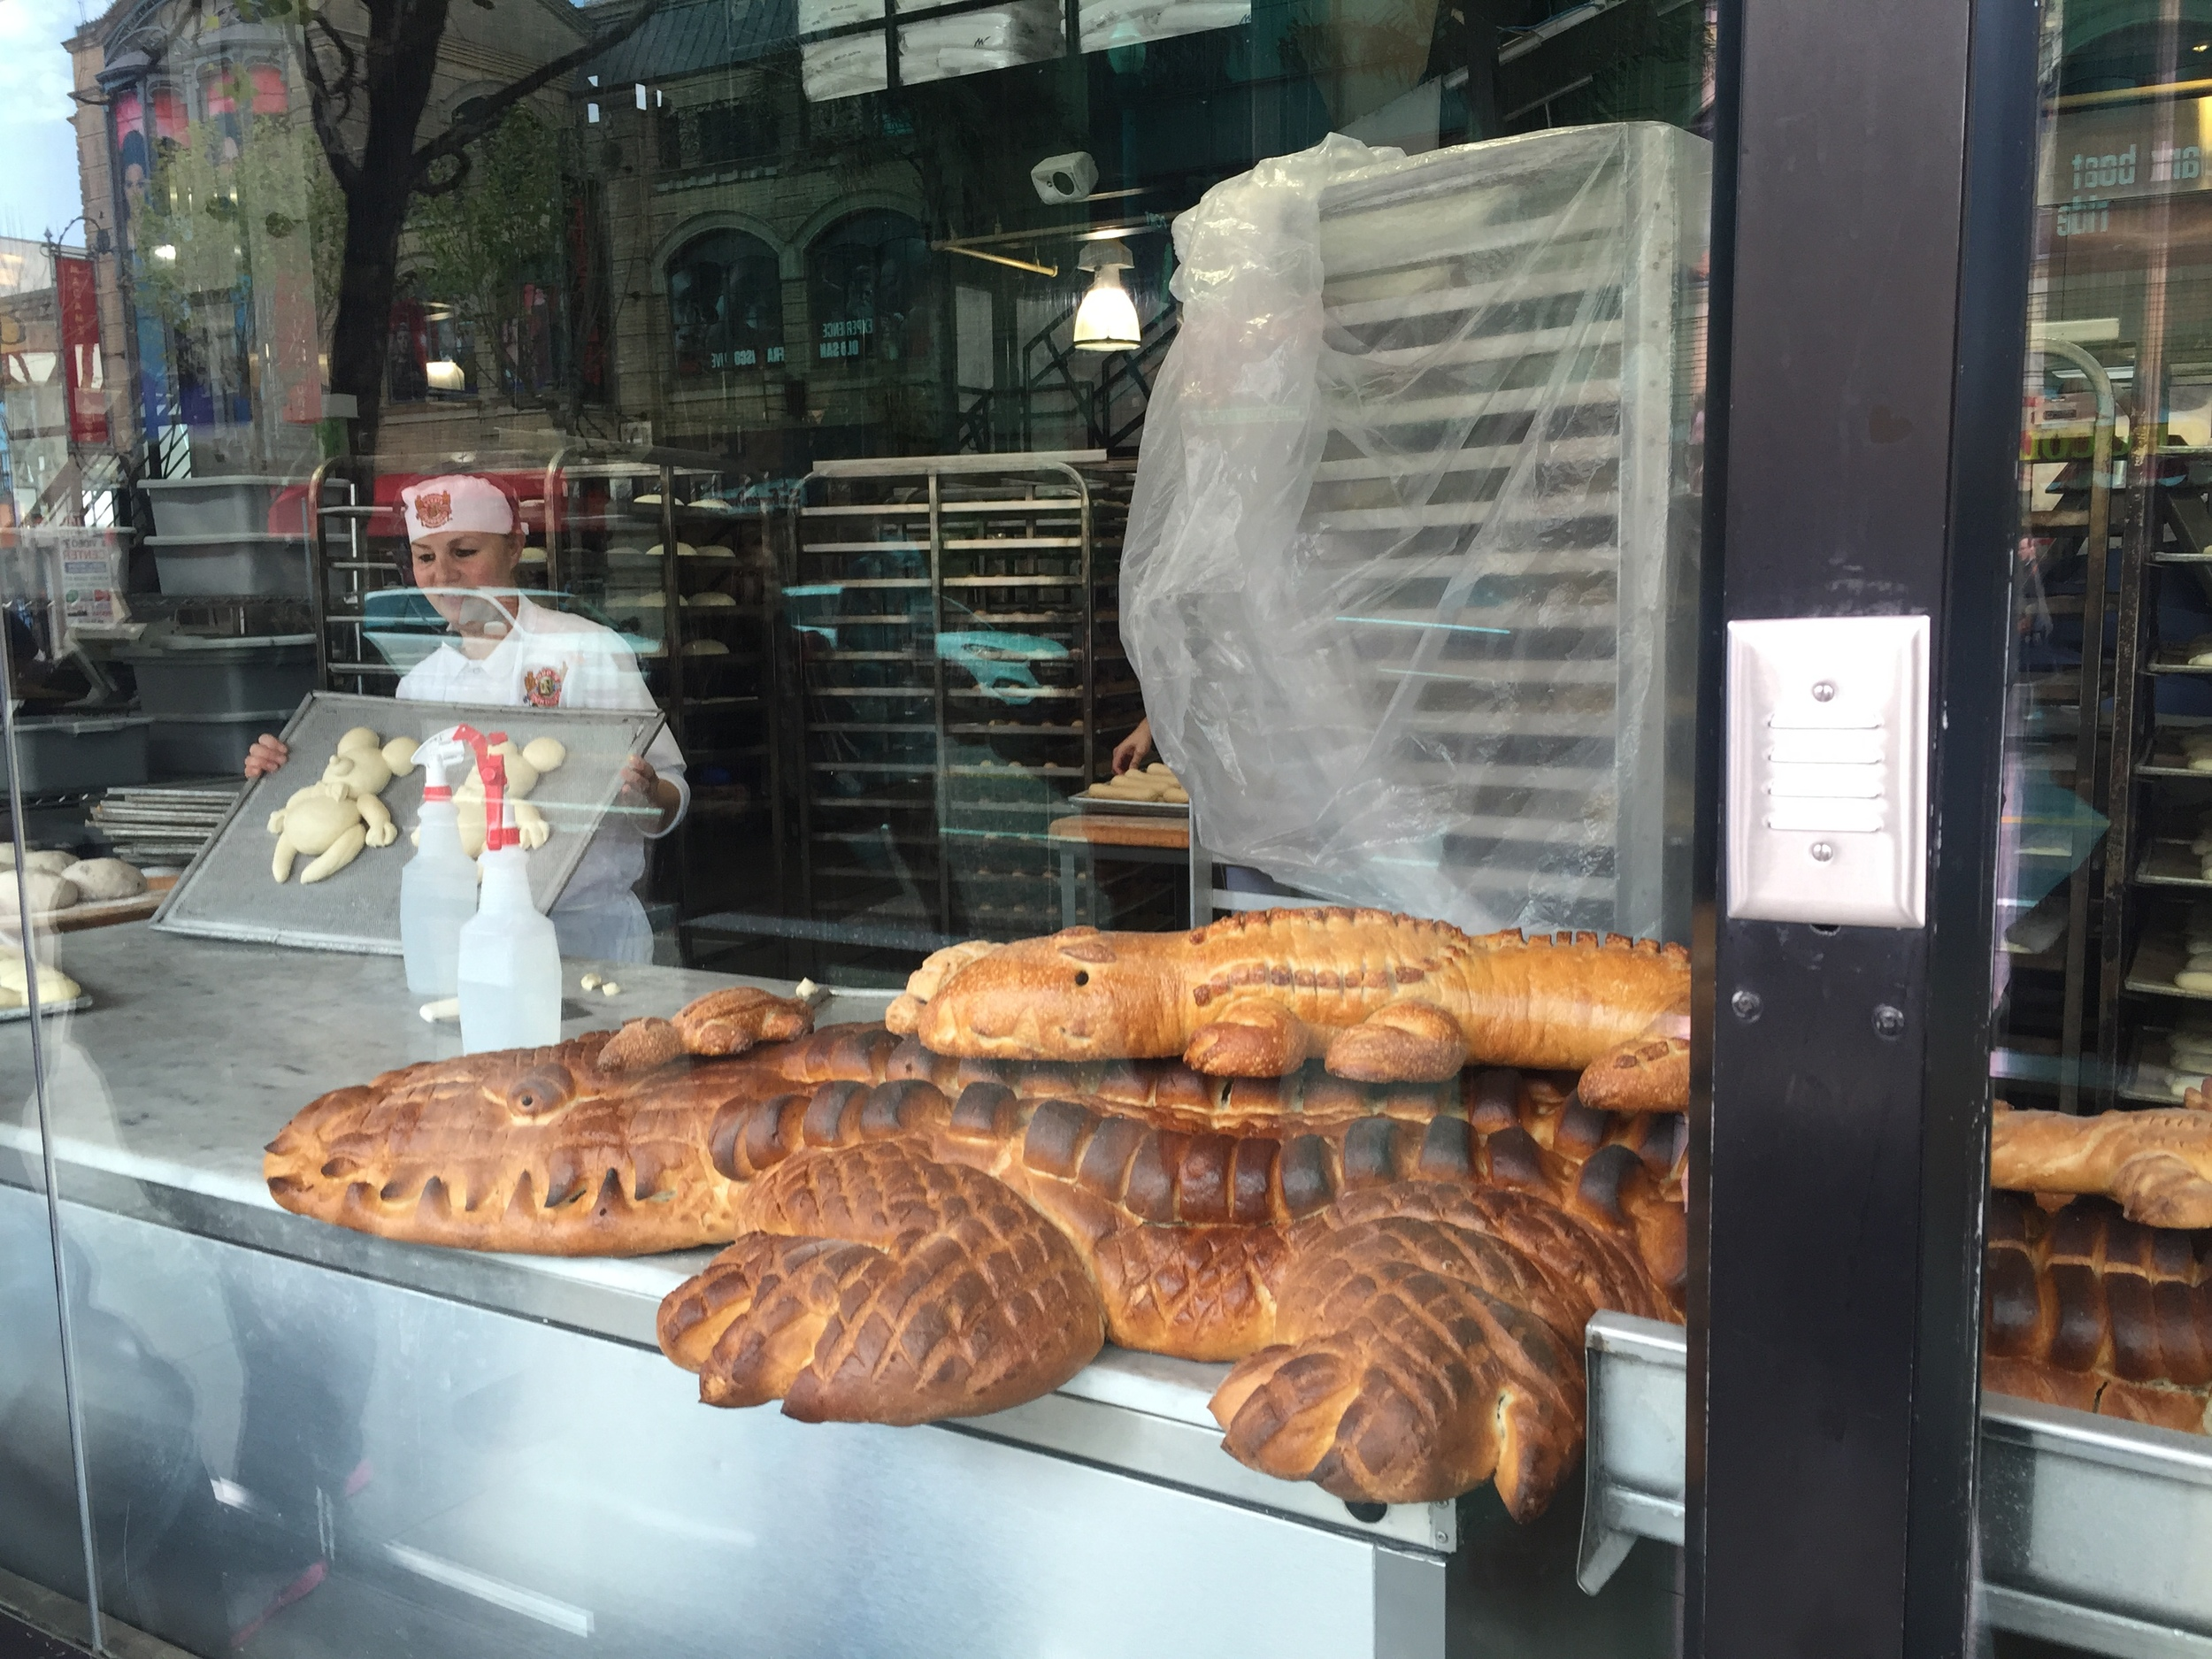 Walked past the #BoudinBakery where they bake animal-shaped French bread. How cool?!